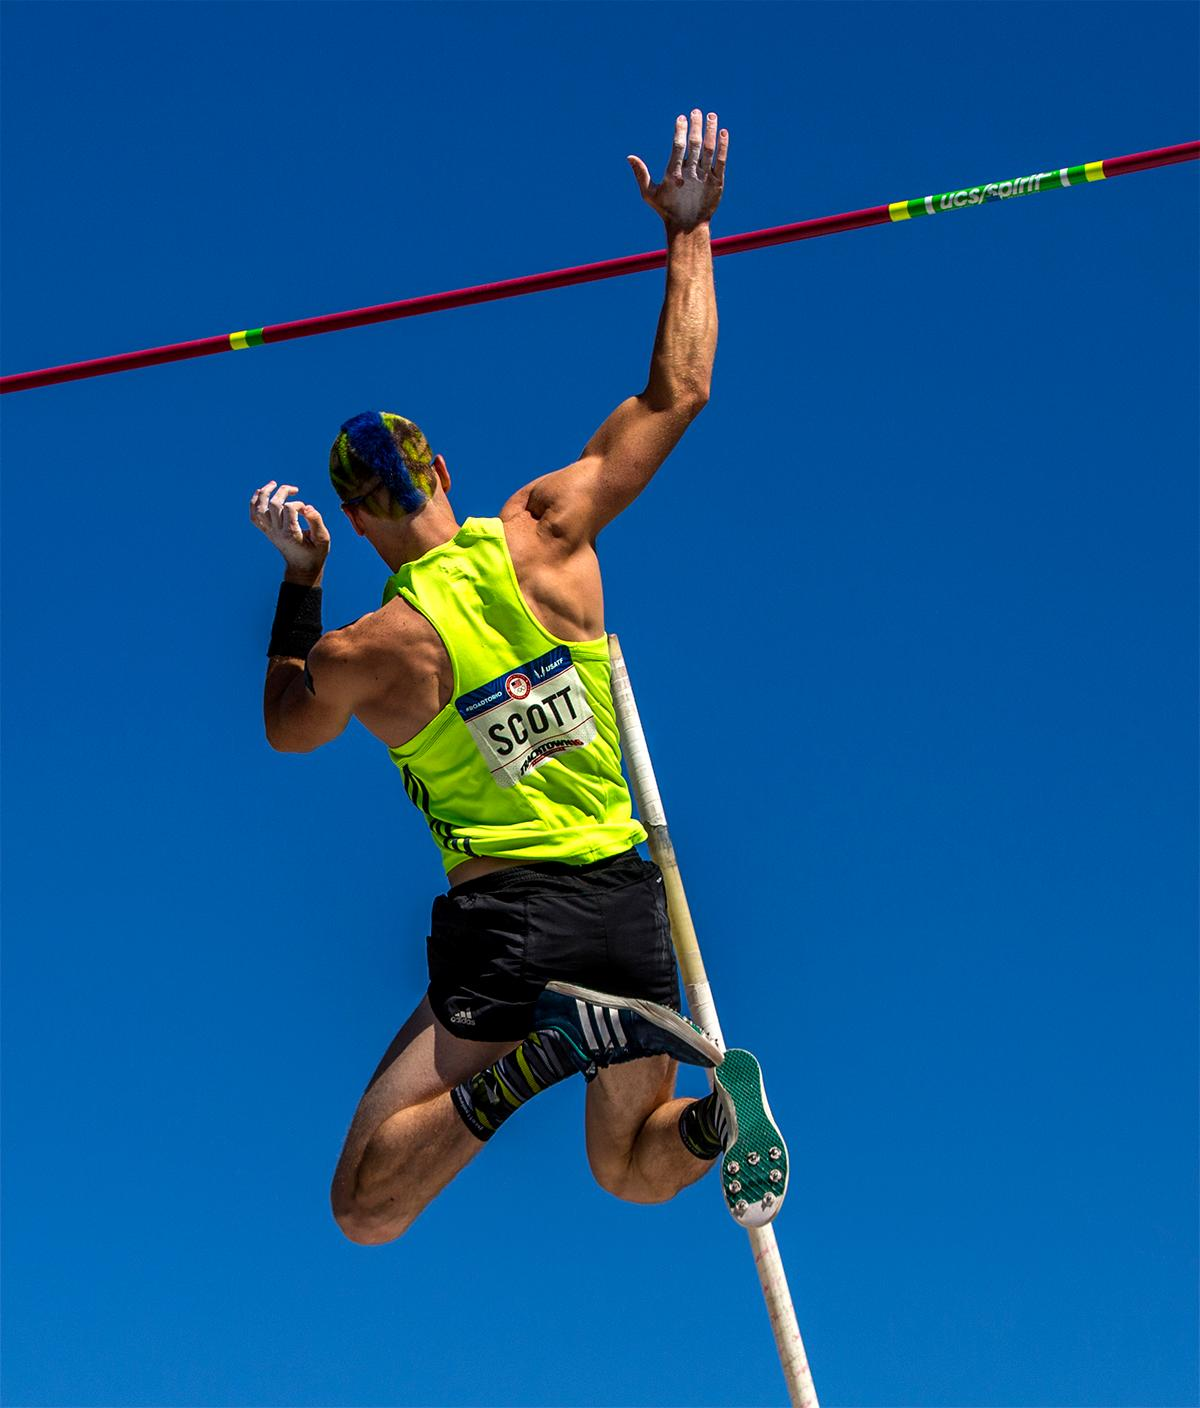 Jordan Scott shows off both his blue and green styled haircut and his pole vaulting skills as he clears the bar. Photo by August Frank, Oregon News Lab